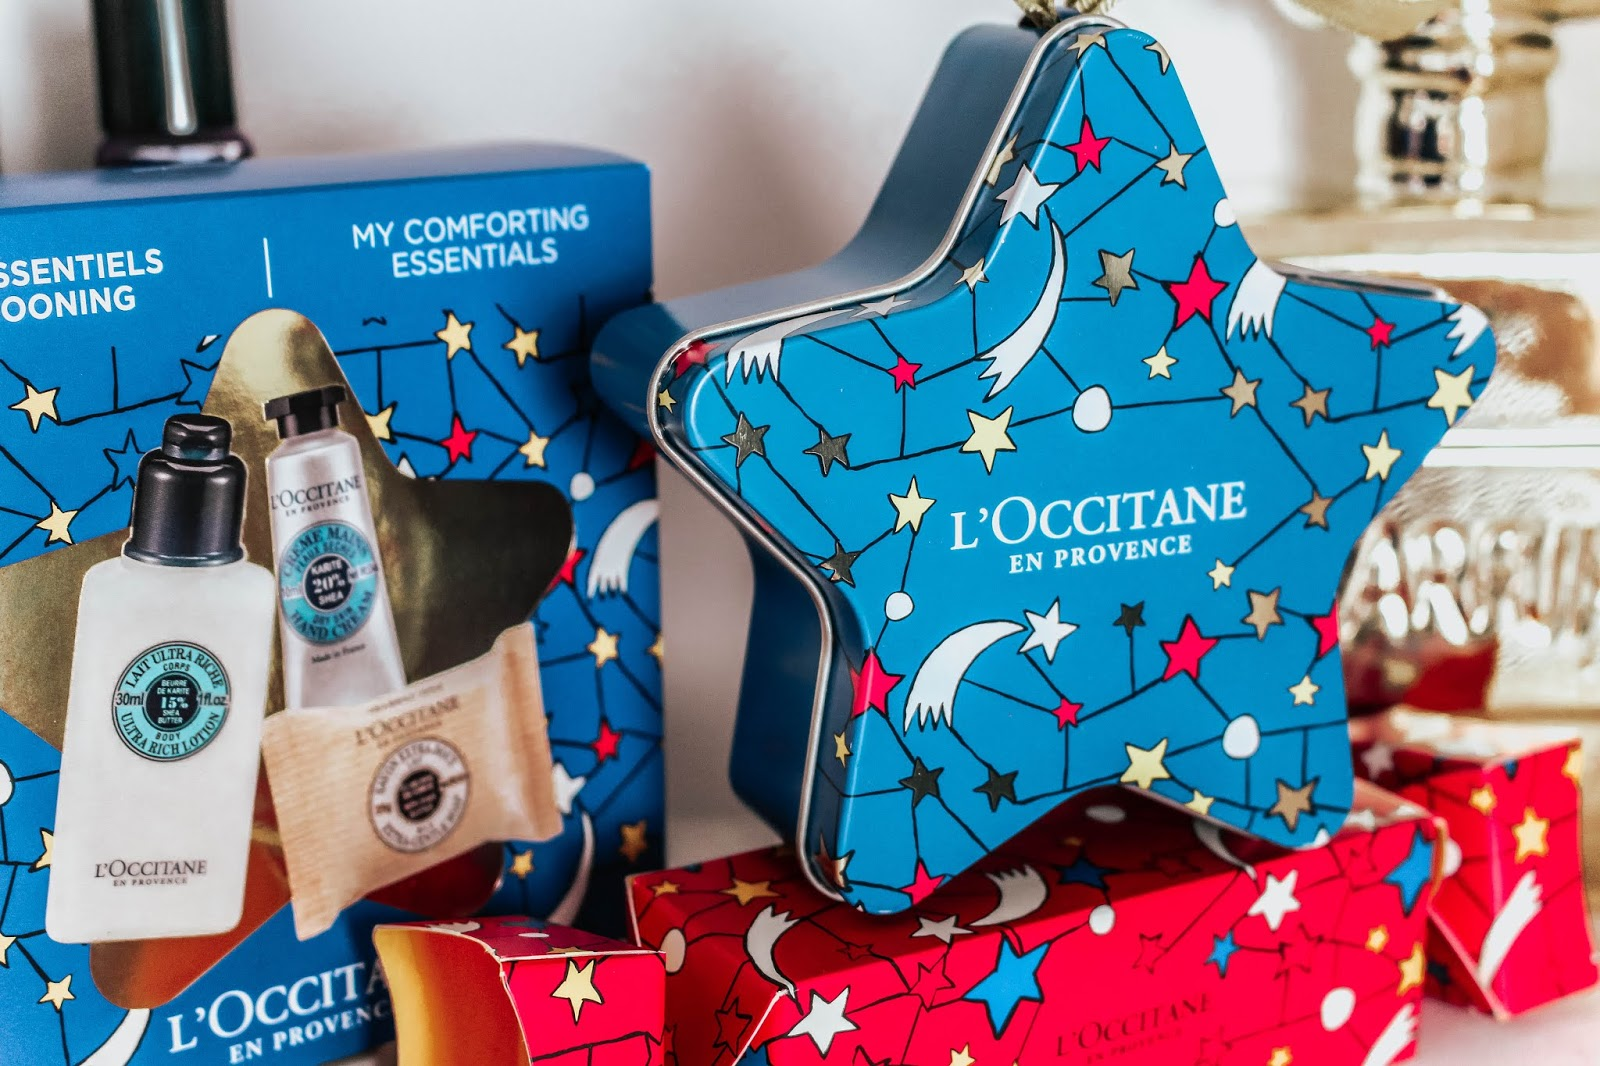 L'Occitane Small Christmas Gifts Star and Cracker